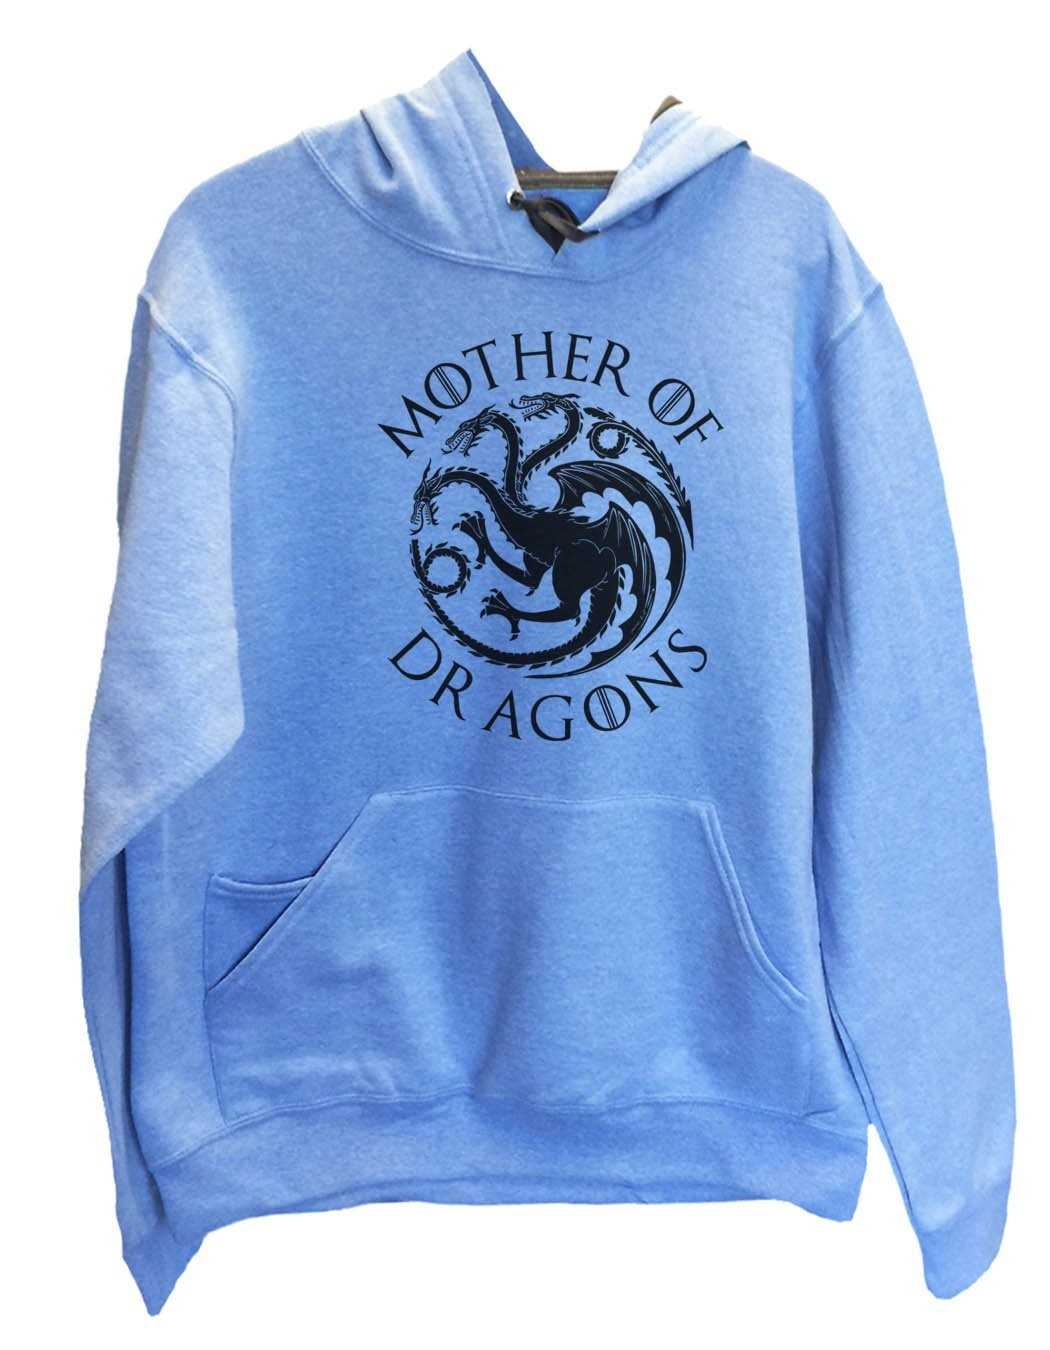 UNISEX HOODIE - Mother Of Dragons - FUNNY MENS AND WOMENS HOODED SWEATSHIRTS - BB15 Funny Shirt Small / North Carolina Blue